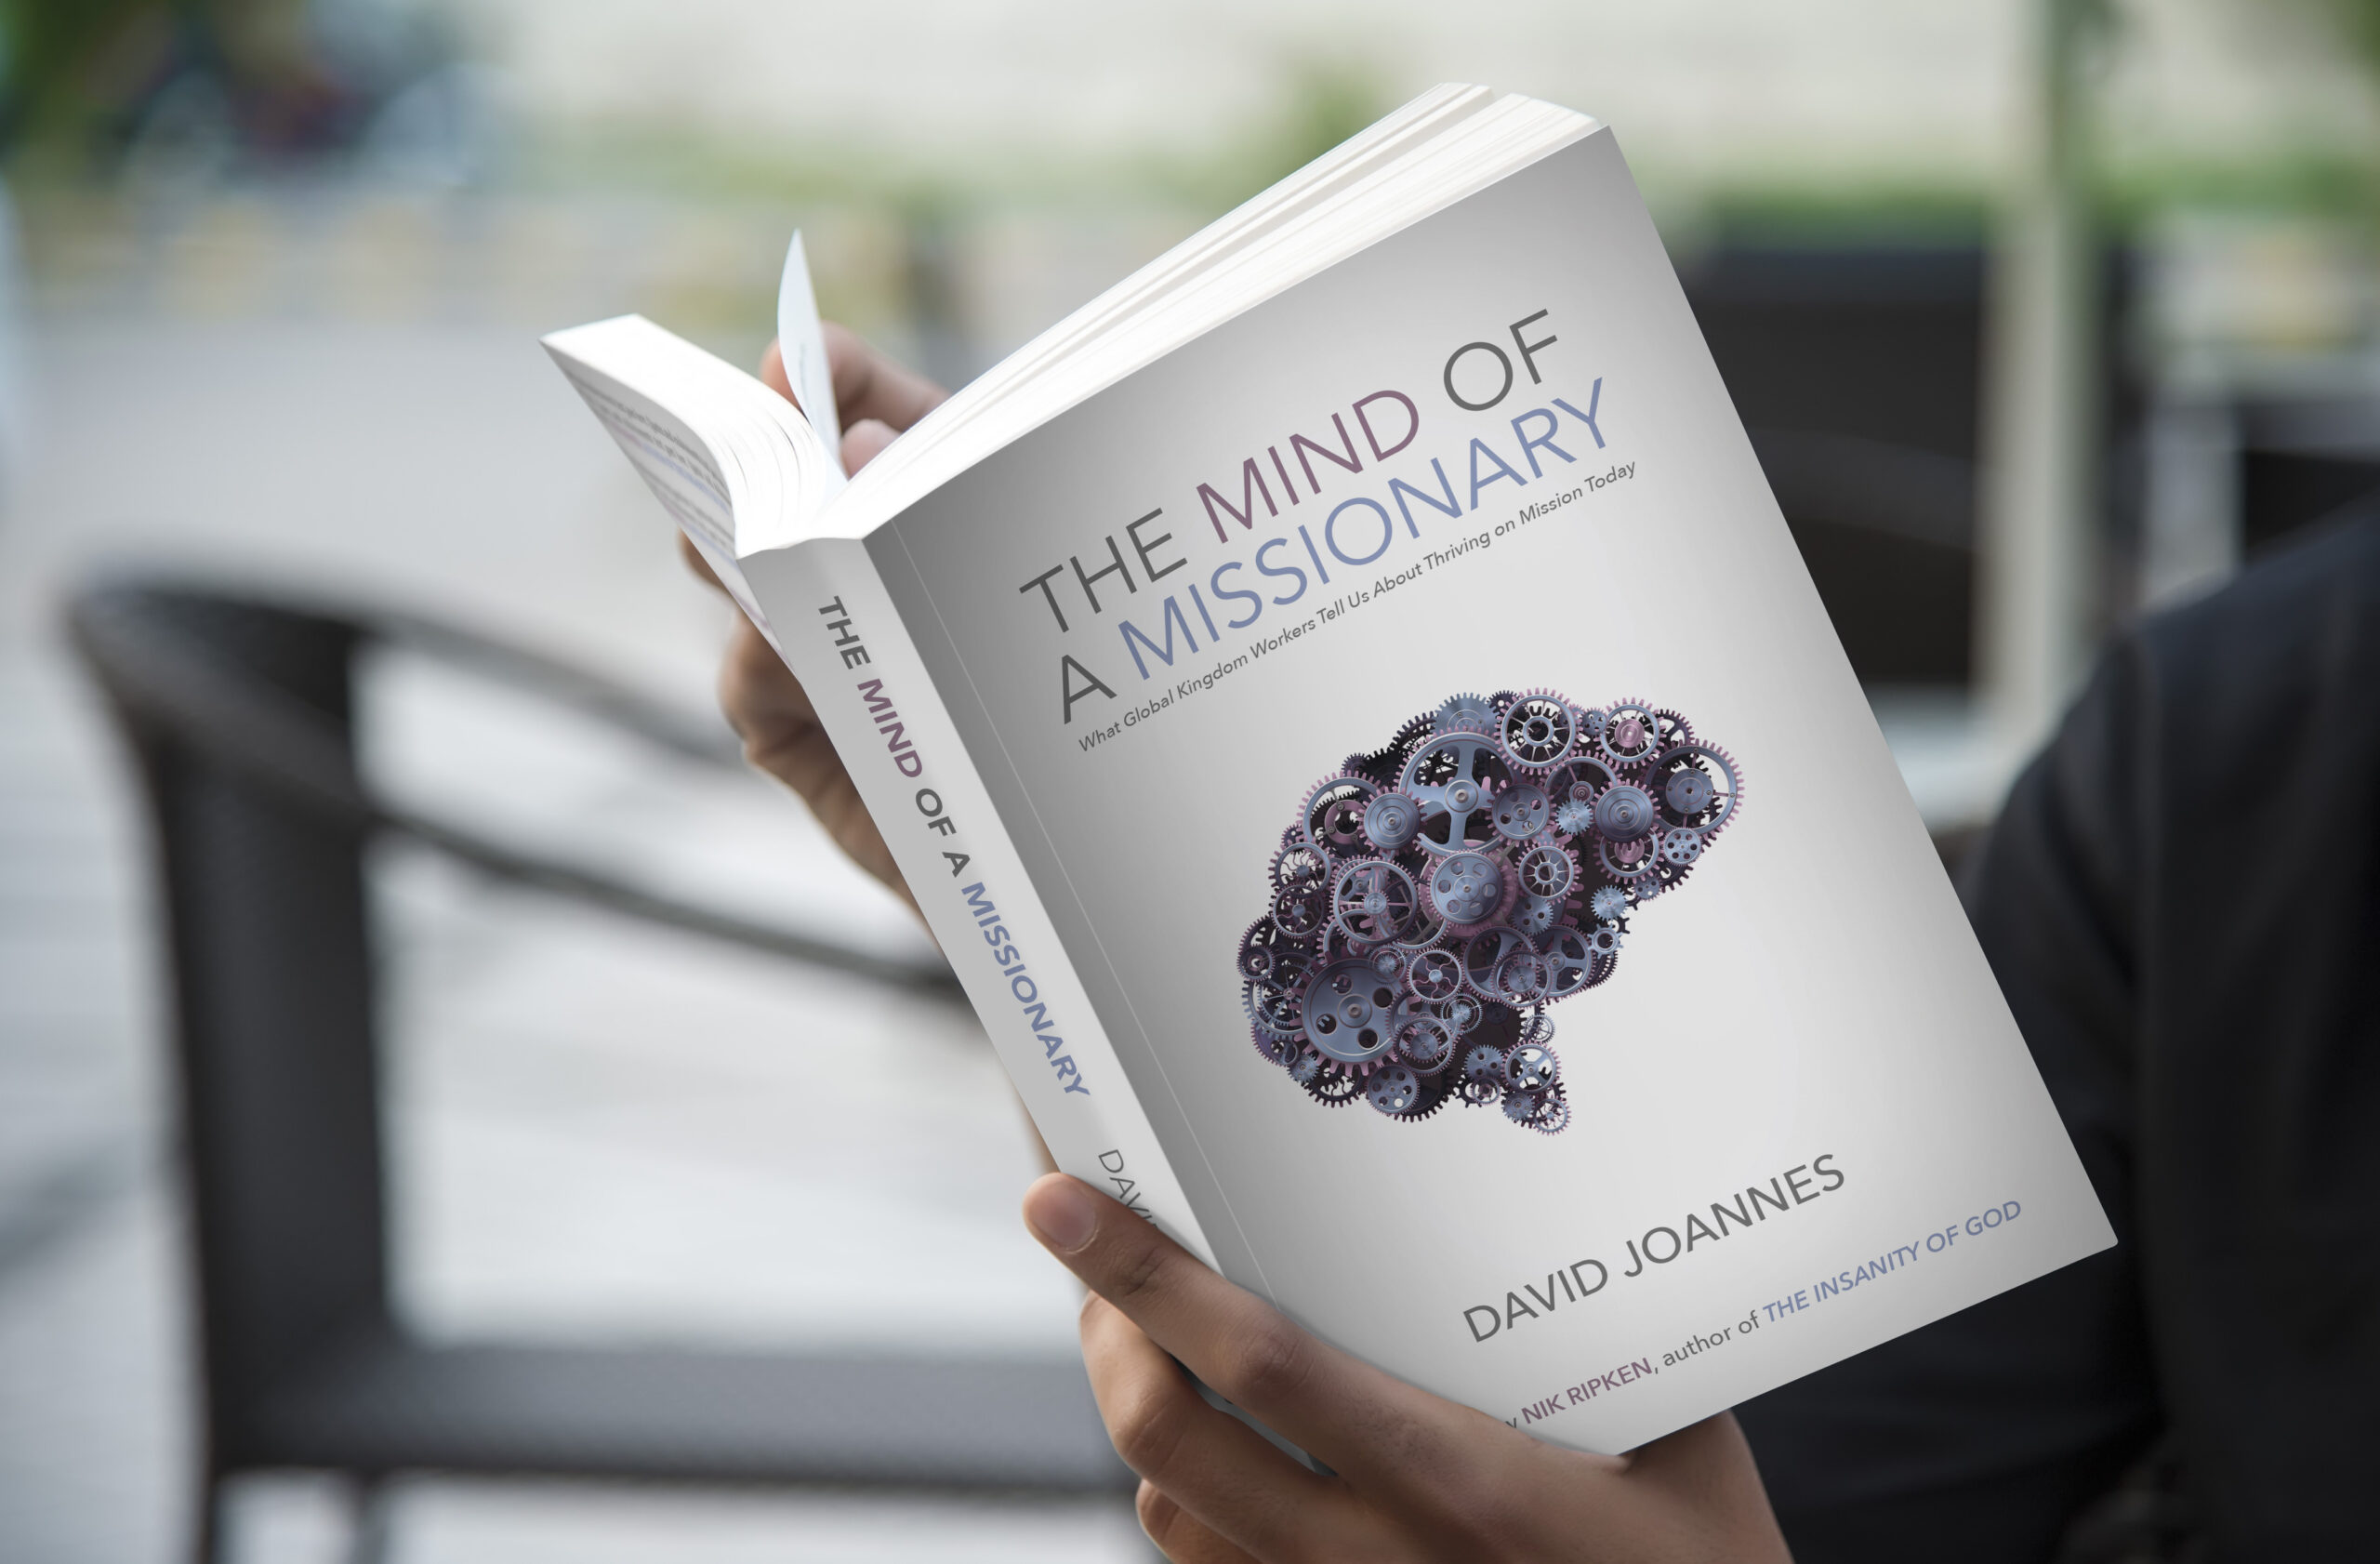 man holding the book The Mind of a Missionary